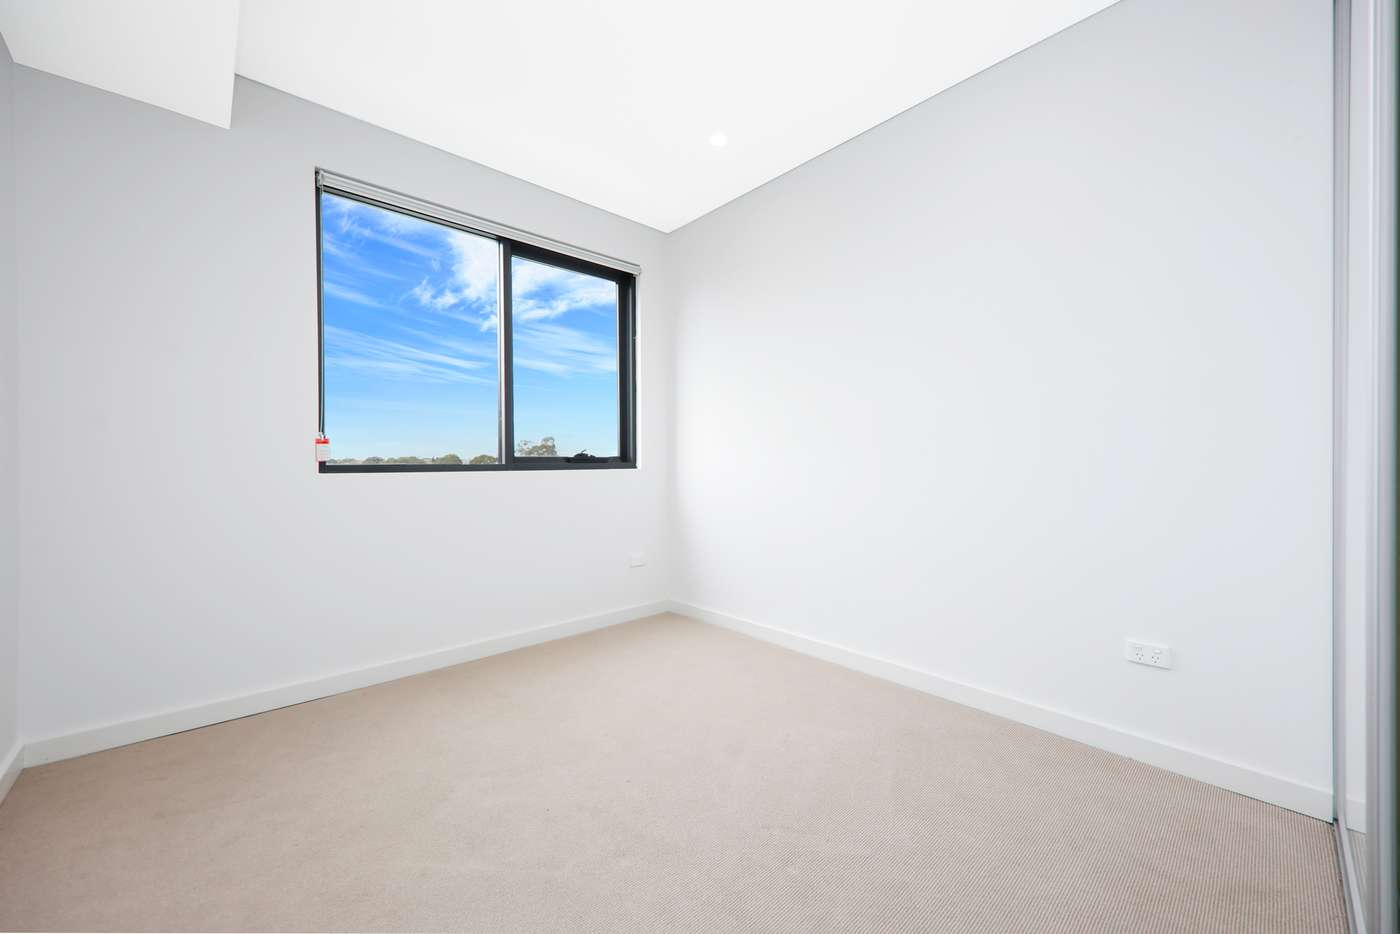 Sixth view of Homely apartment listing, 161/548-568 Canterbury Road, Campsie NSW 2194